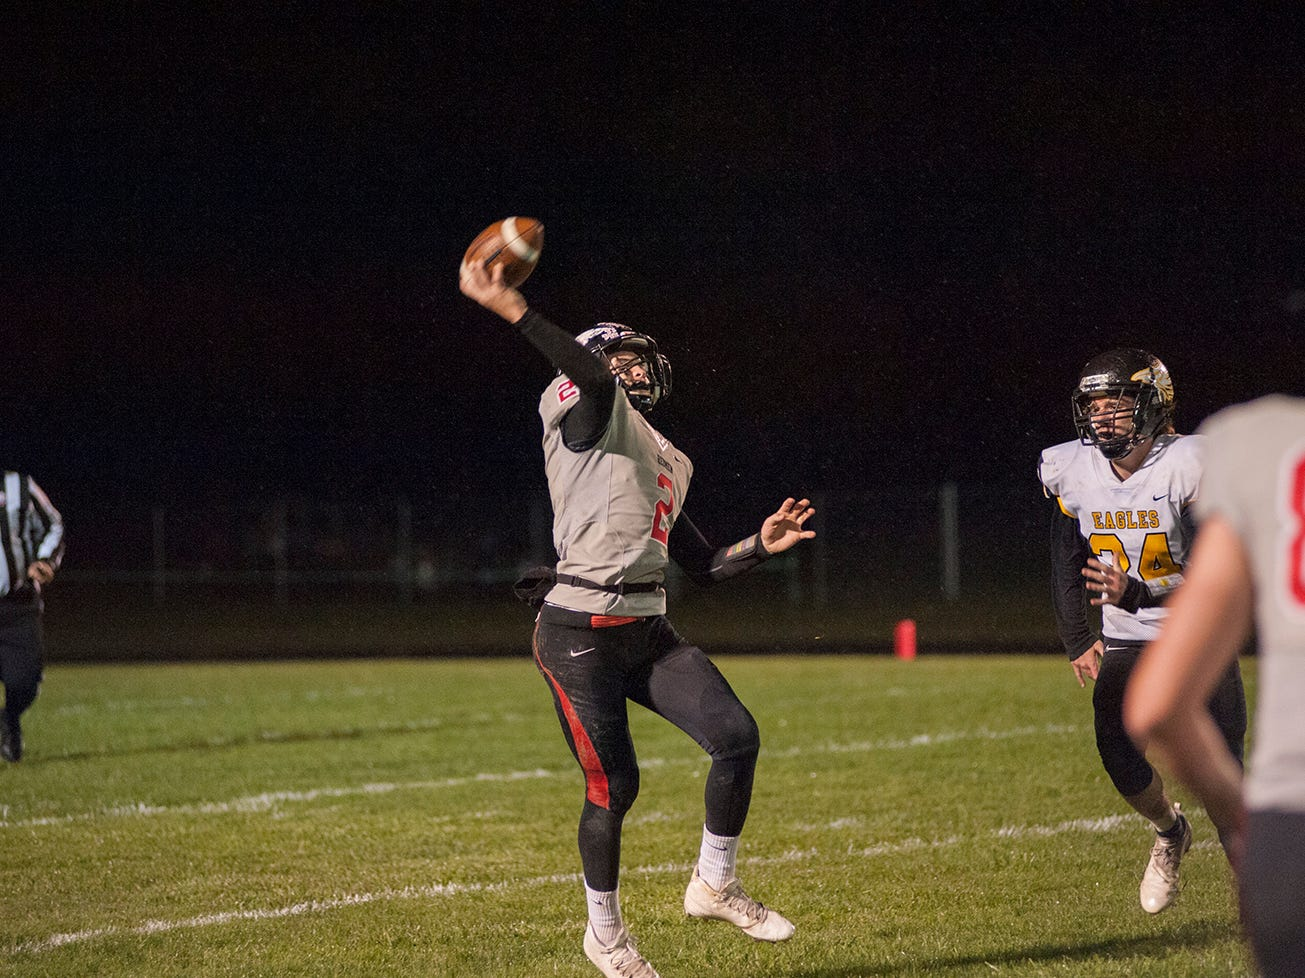 Bucyrus' Ben Seibert attempts a pass.